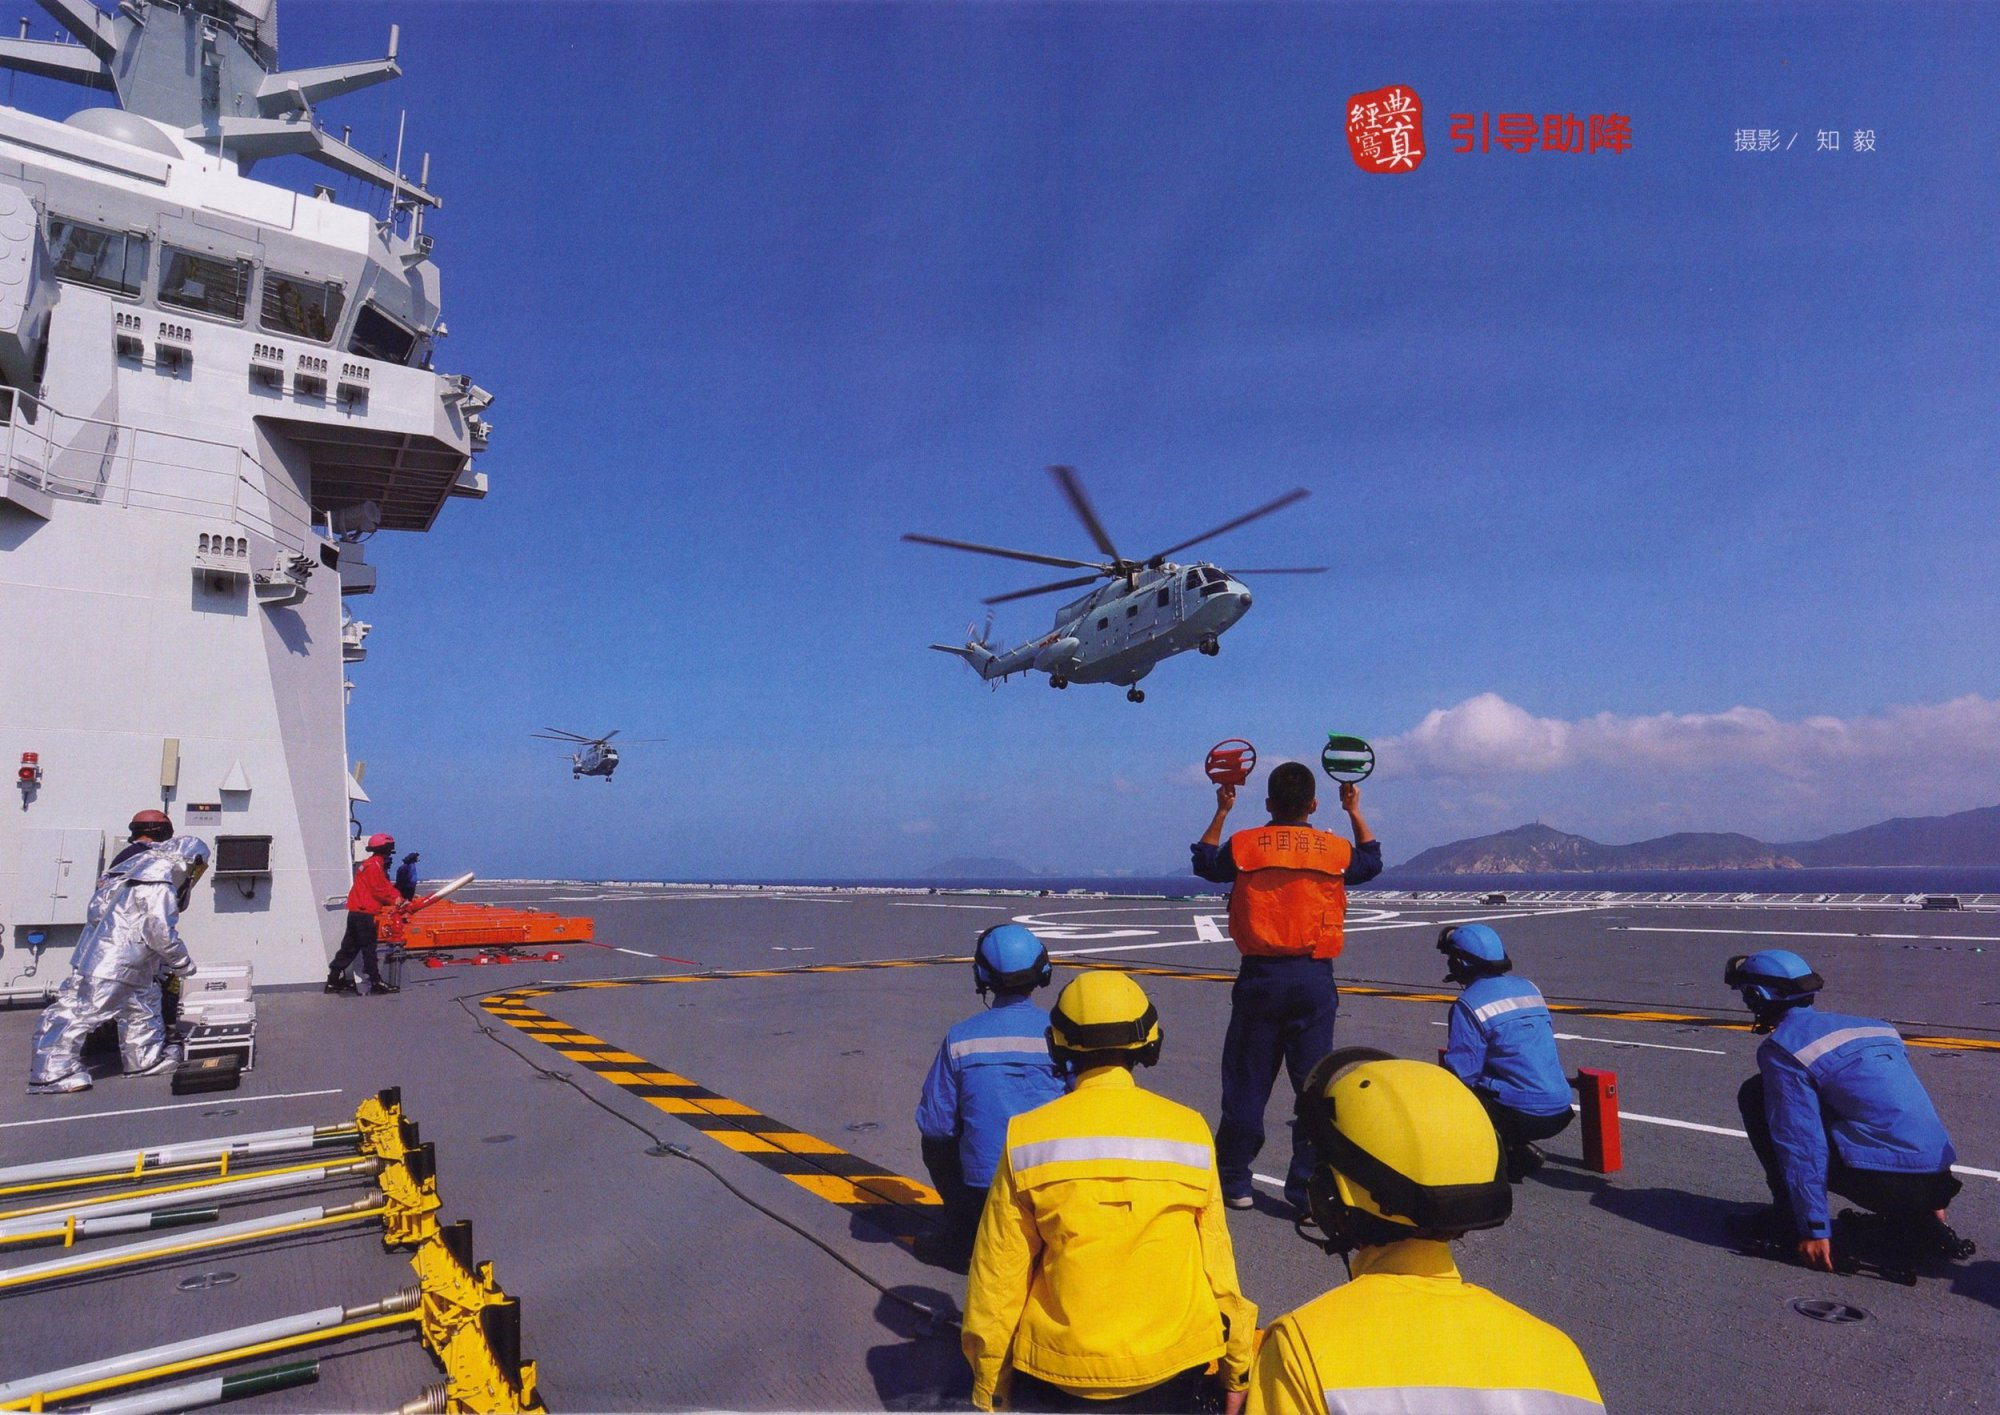 Type 075 LHD Hainan 31 - On the flight port of the helicopter carrier 31 Hainan - June 2021.jpg